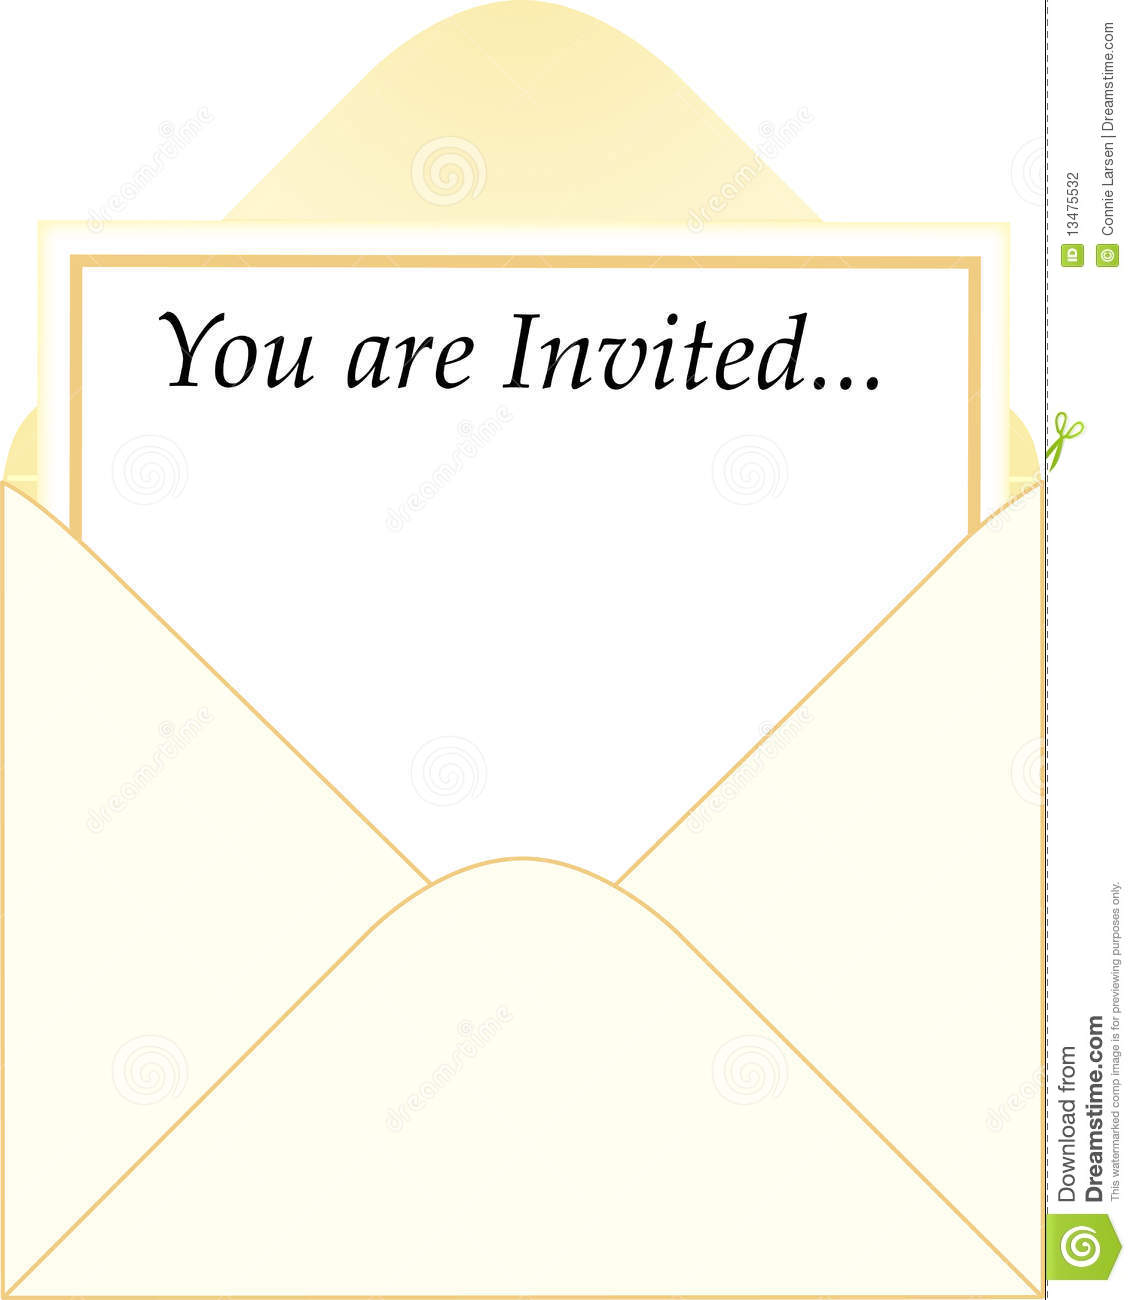 Invitation Cocktail Party as perfect invitations layout